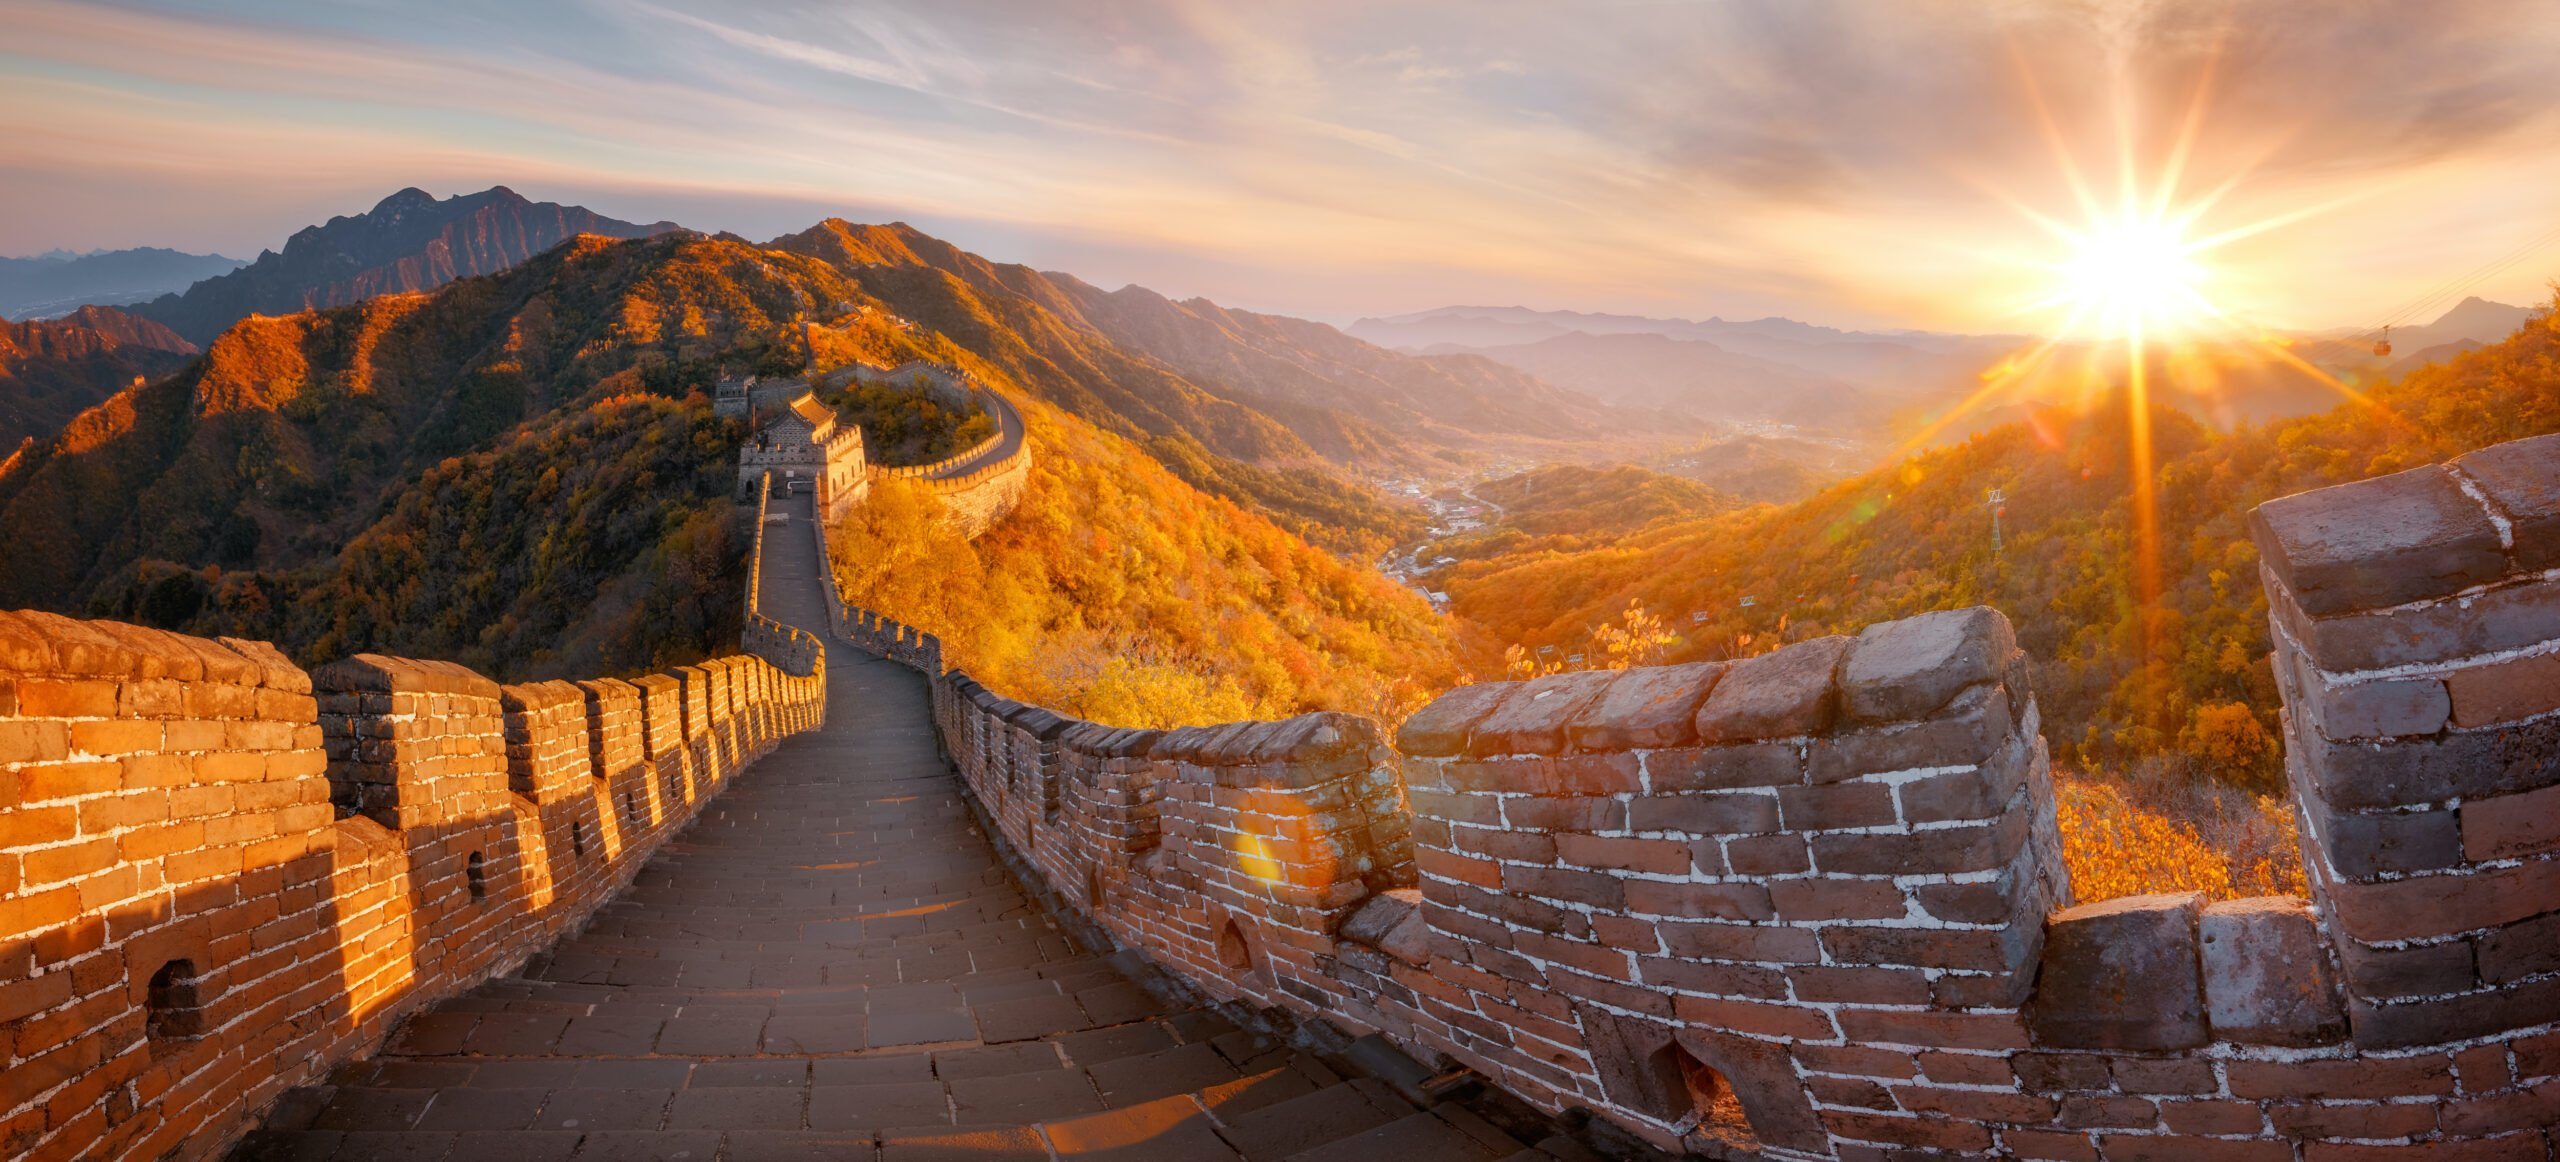 Explore The Amazing Chinese Great Wall In Our China Private Impression 14 Day Package